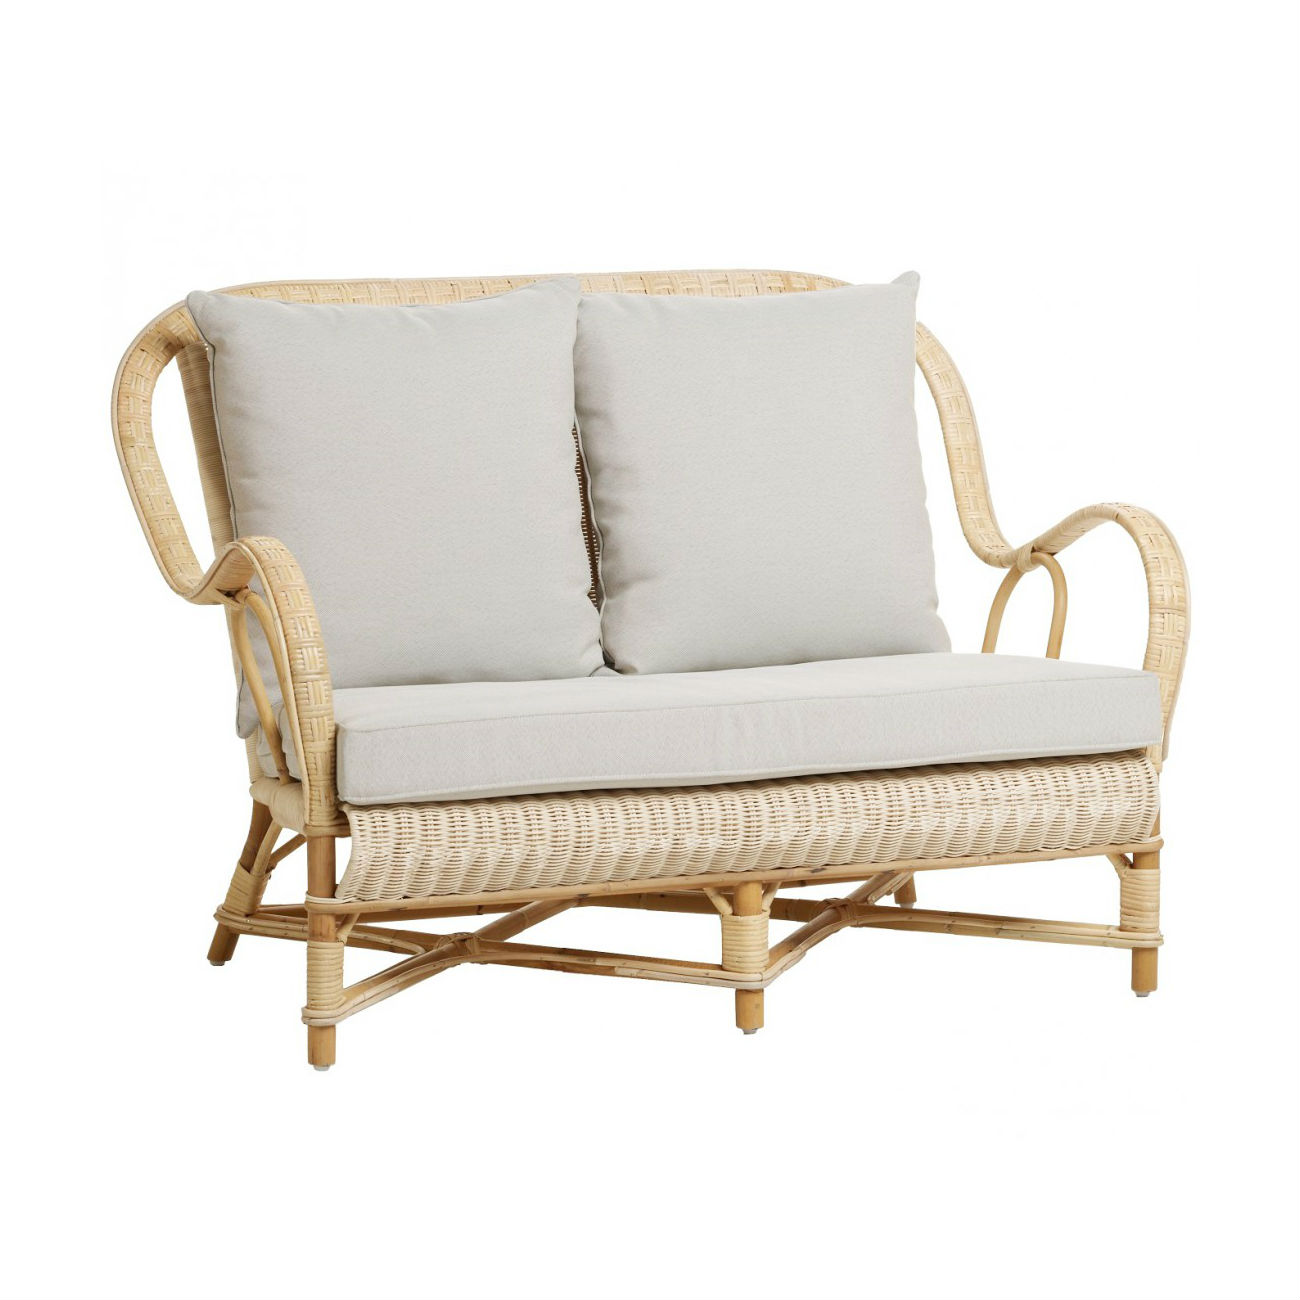 Canapé Rotin Vintage Naturel 2 Places Nantucket Brin D Ouest